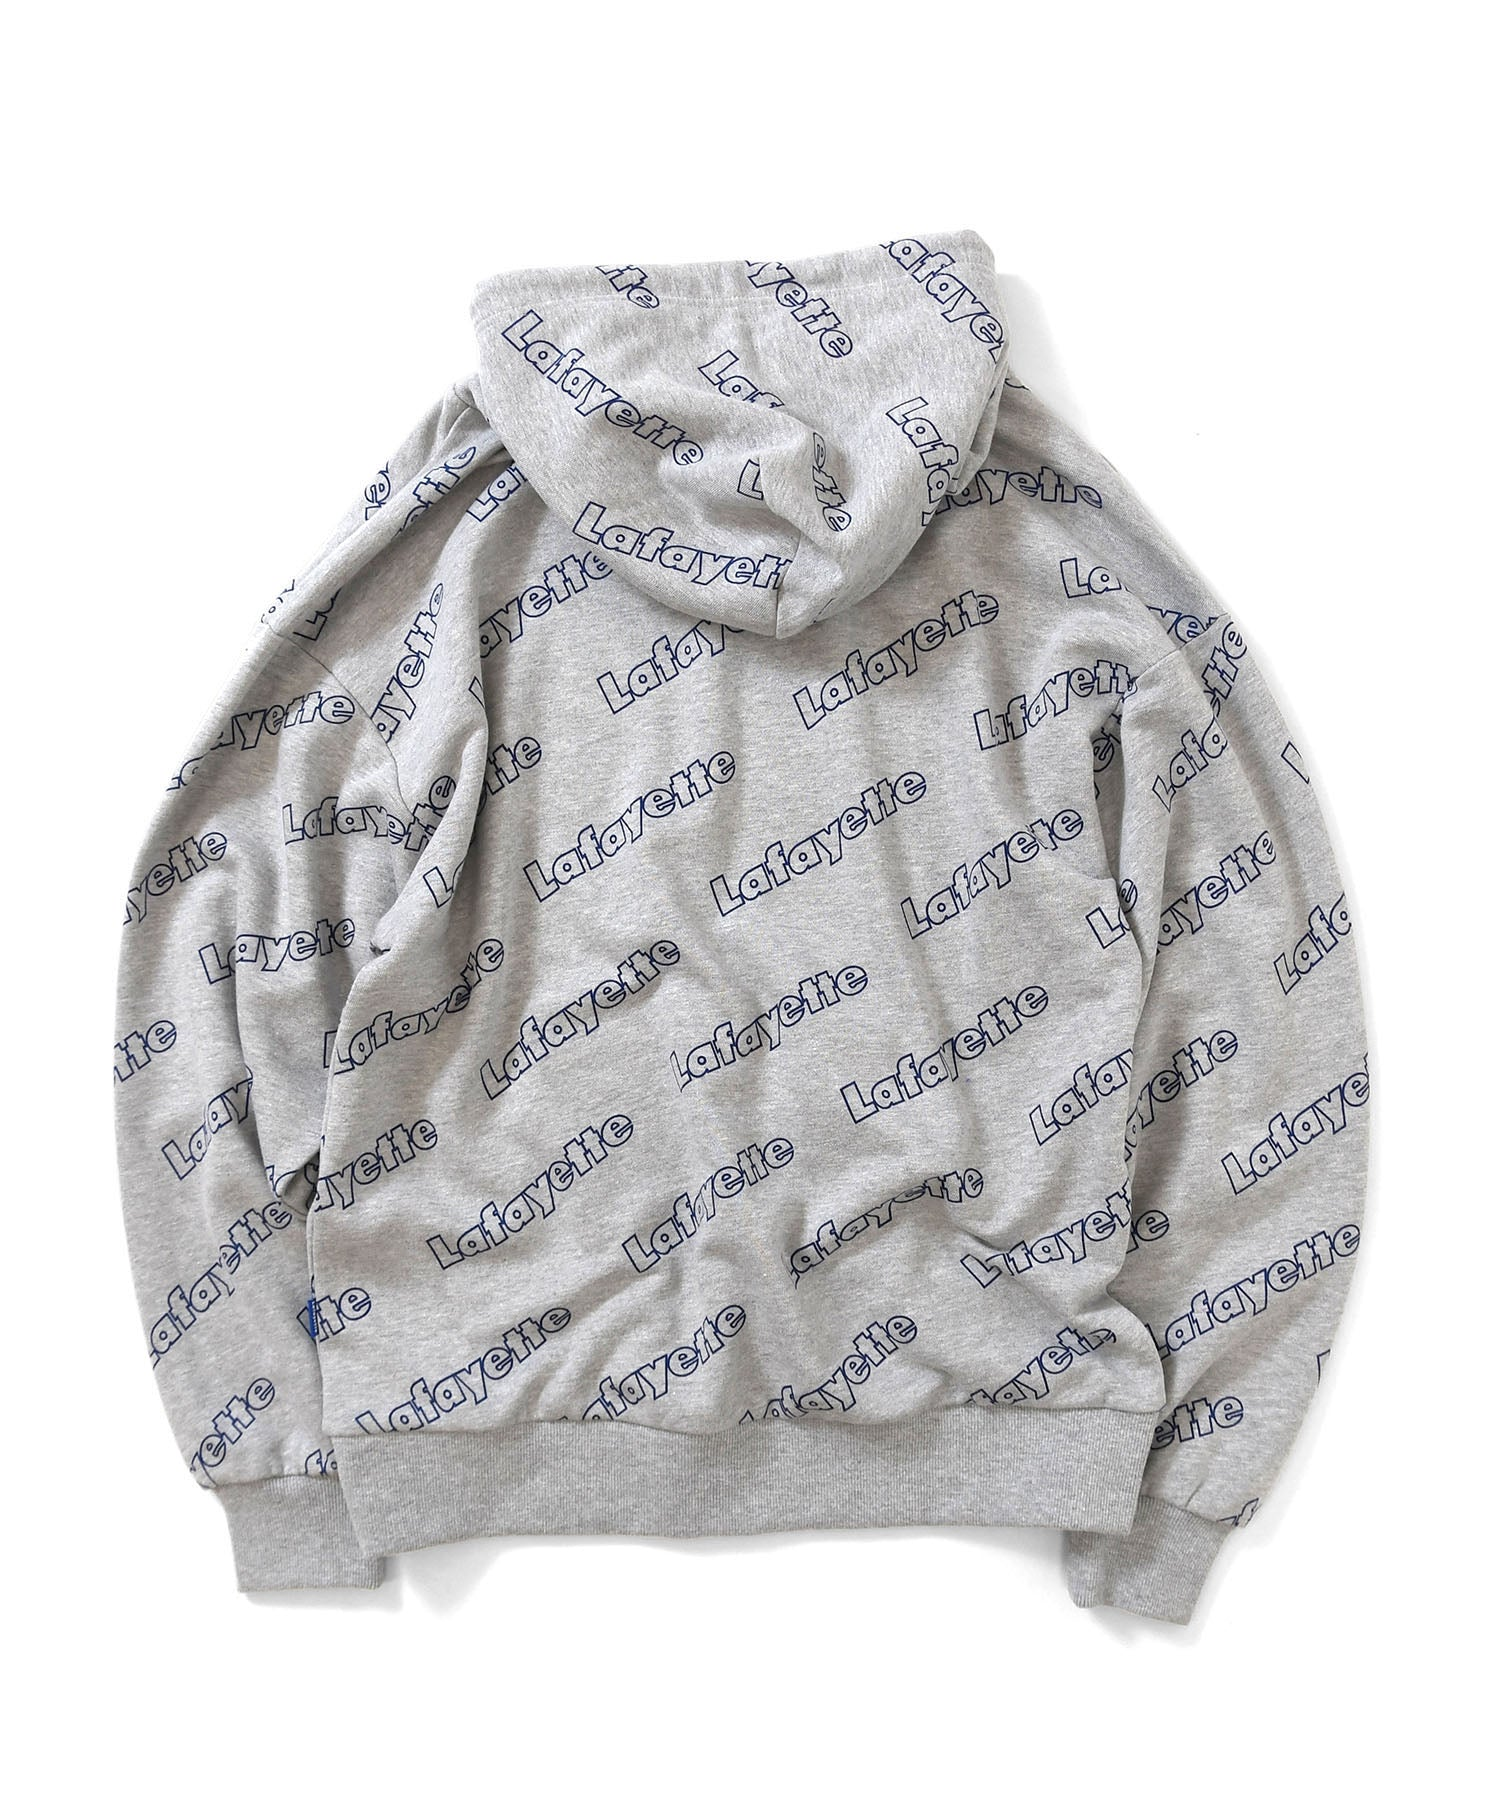 OUTLINE LOGO ALLOVER HOODED SWEATSHIRT HEATHER GRAY LA200501